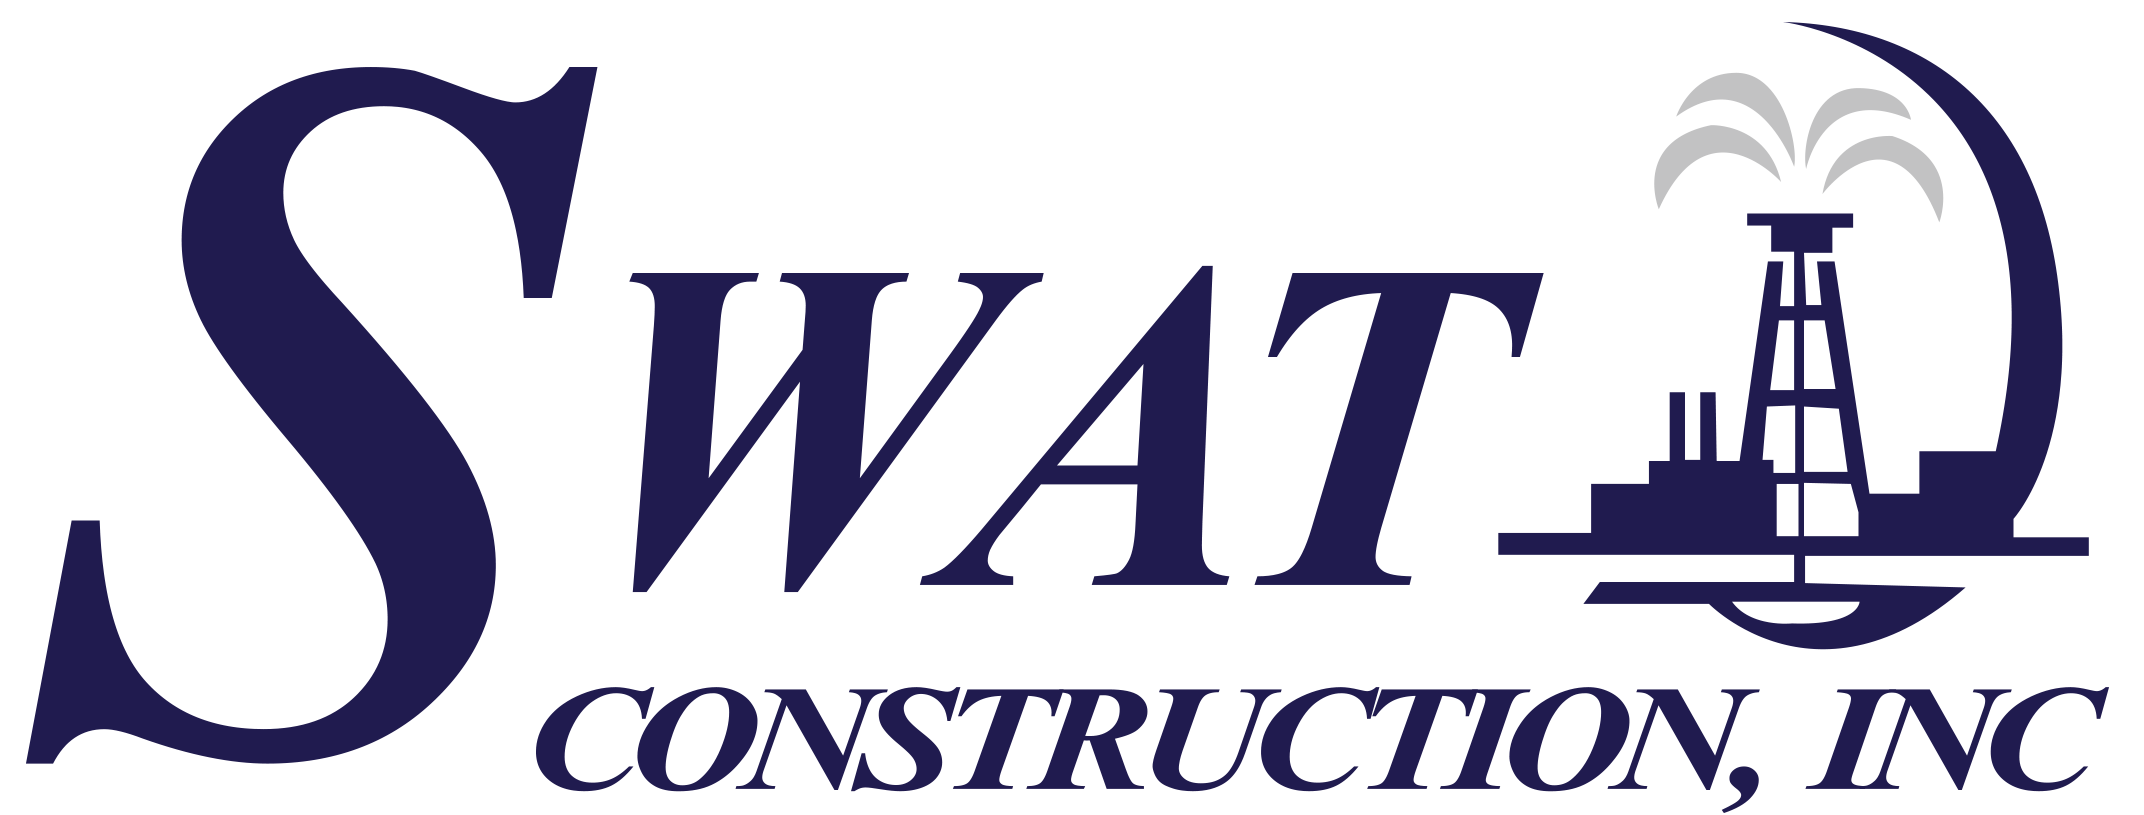 SWAT Construction, Inc.